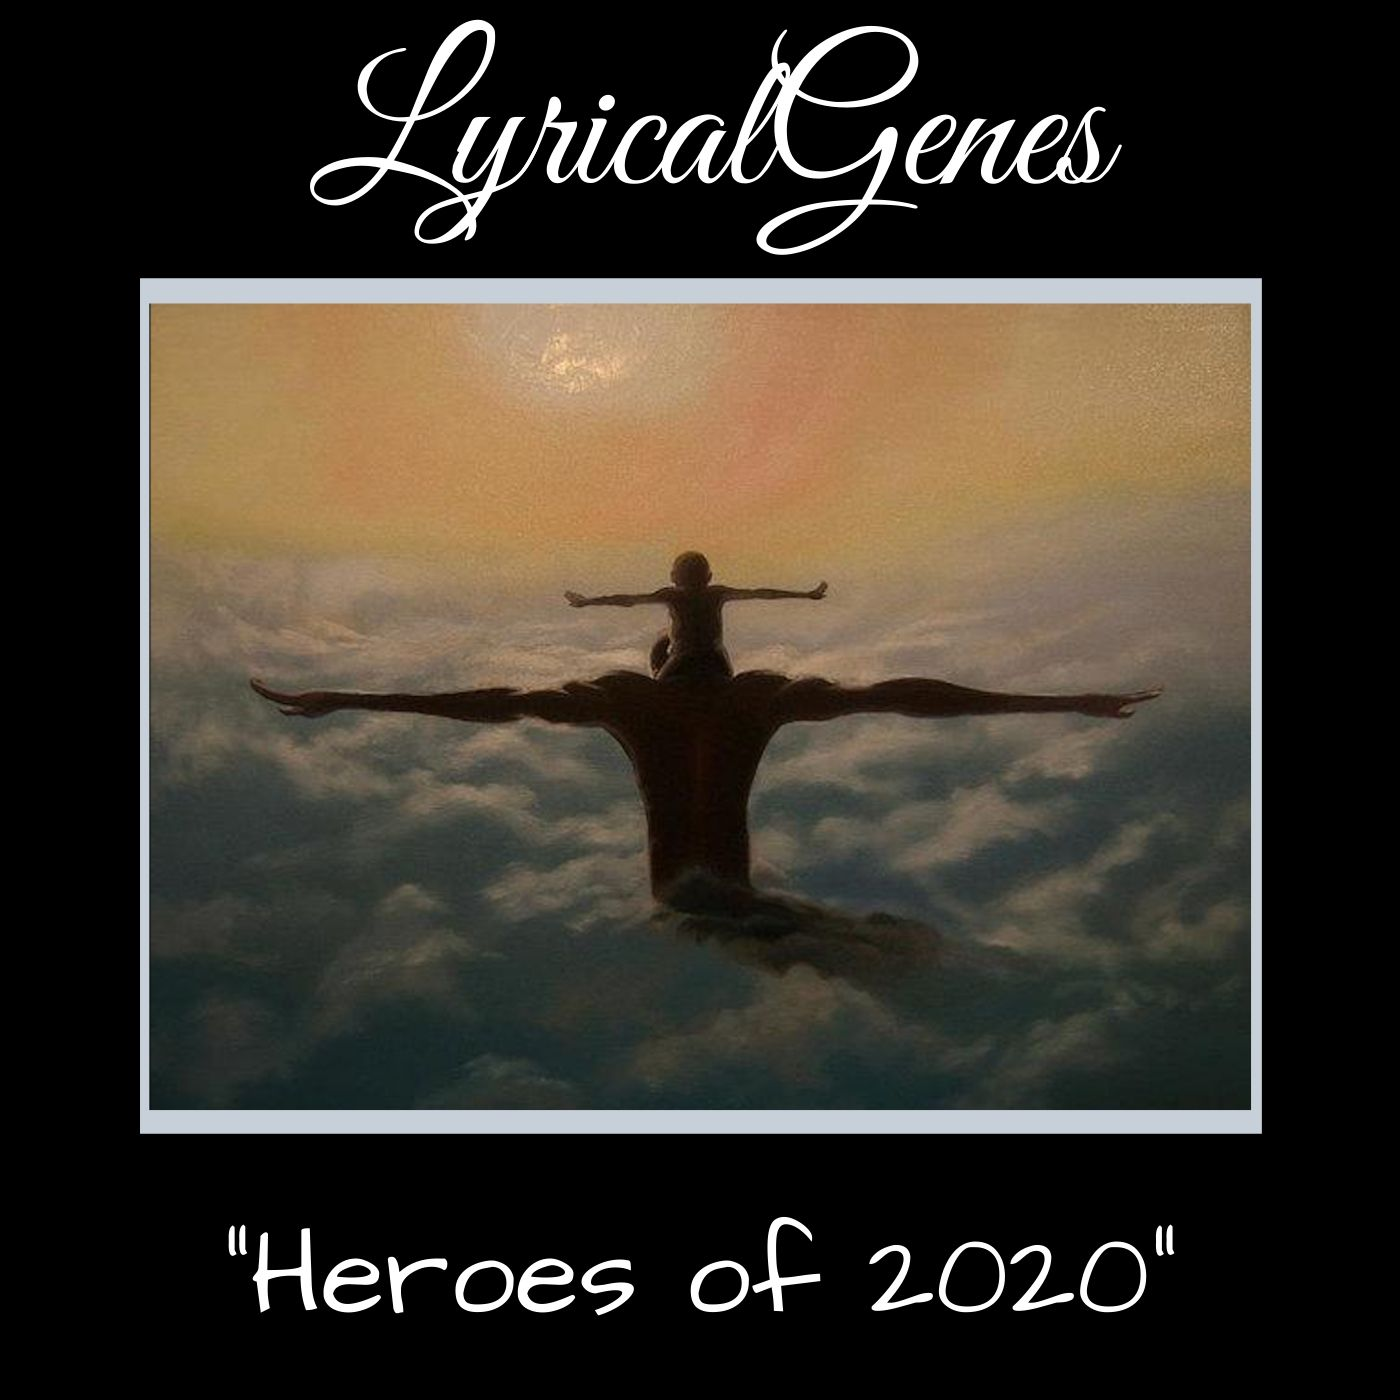 """LyricalGenes Delivers Inspirational Covid-19 """"Heroes of 2020"""" Song"""